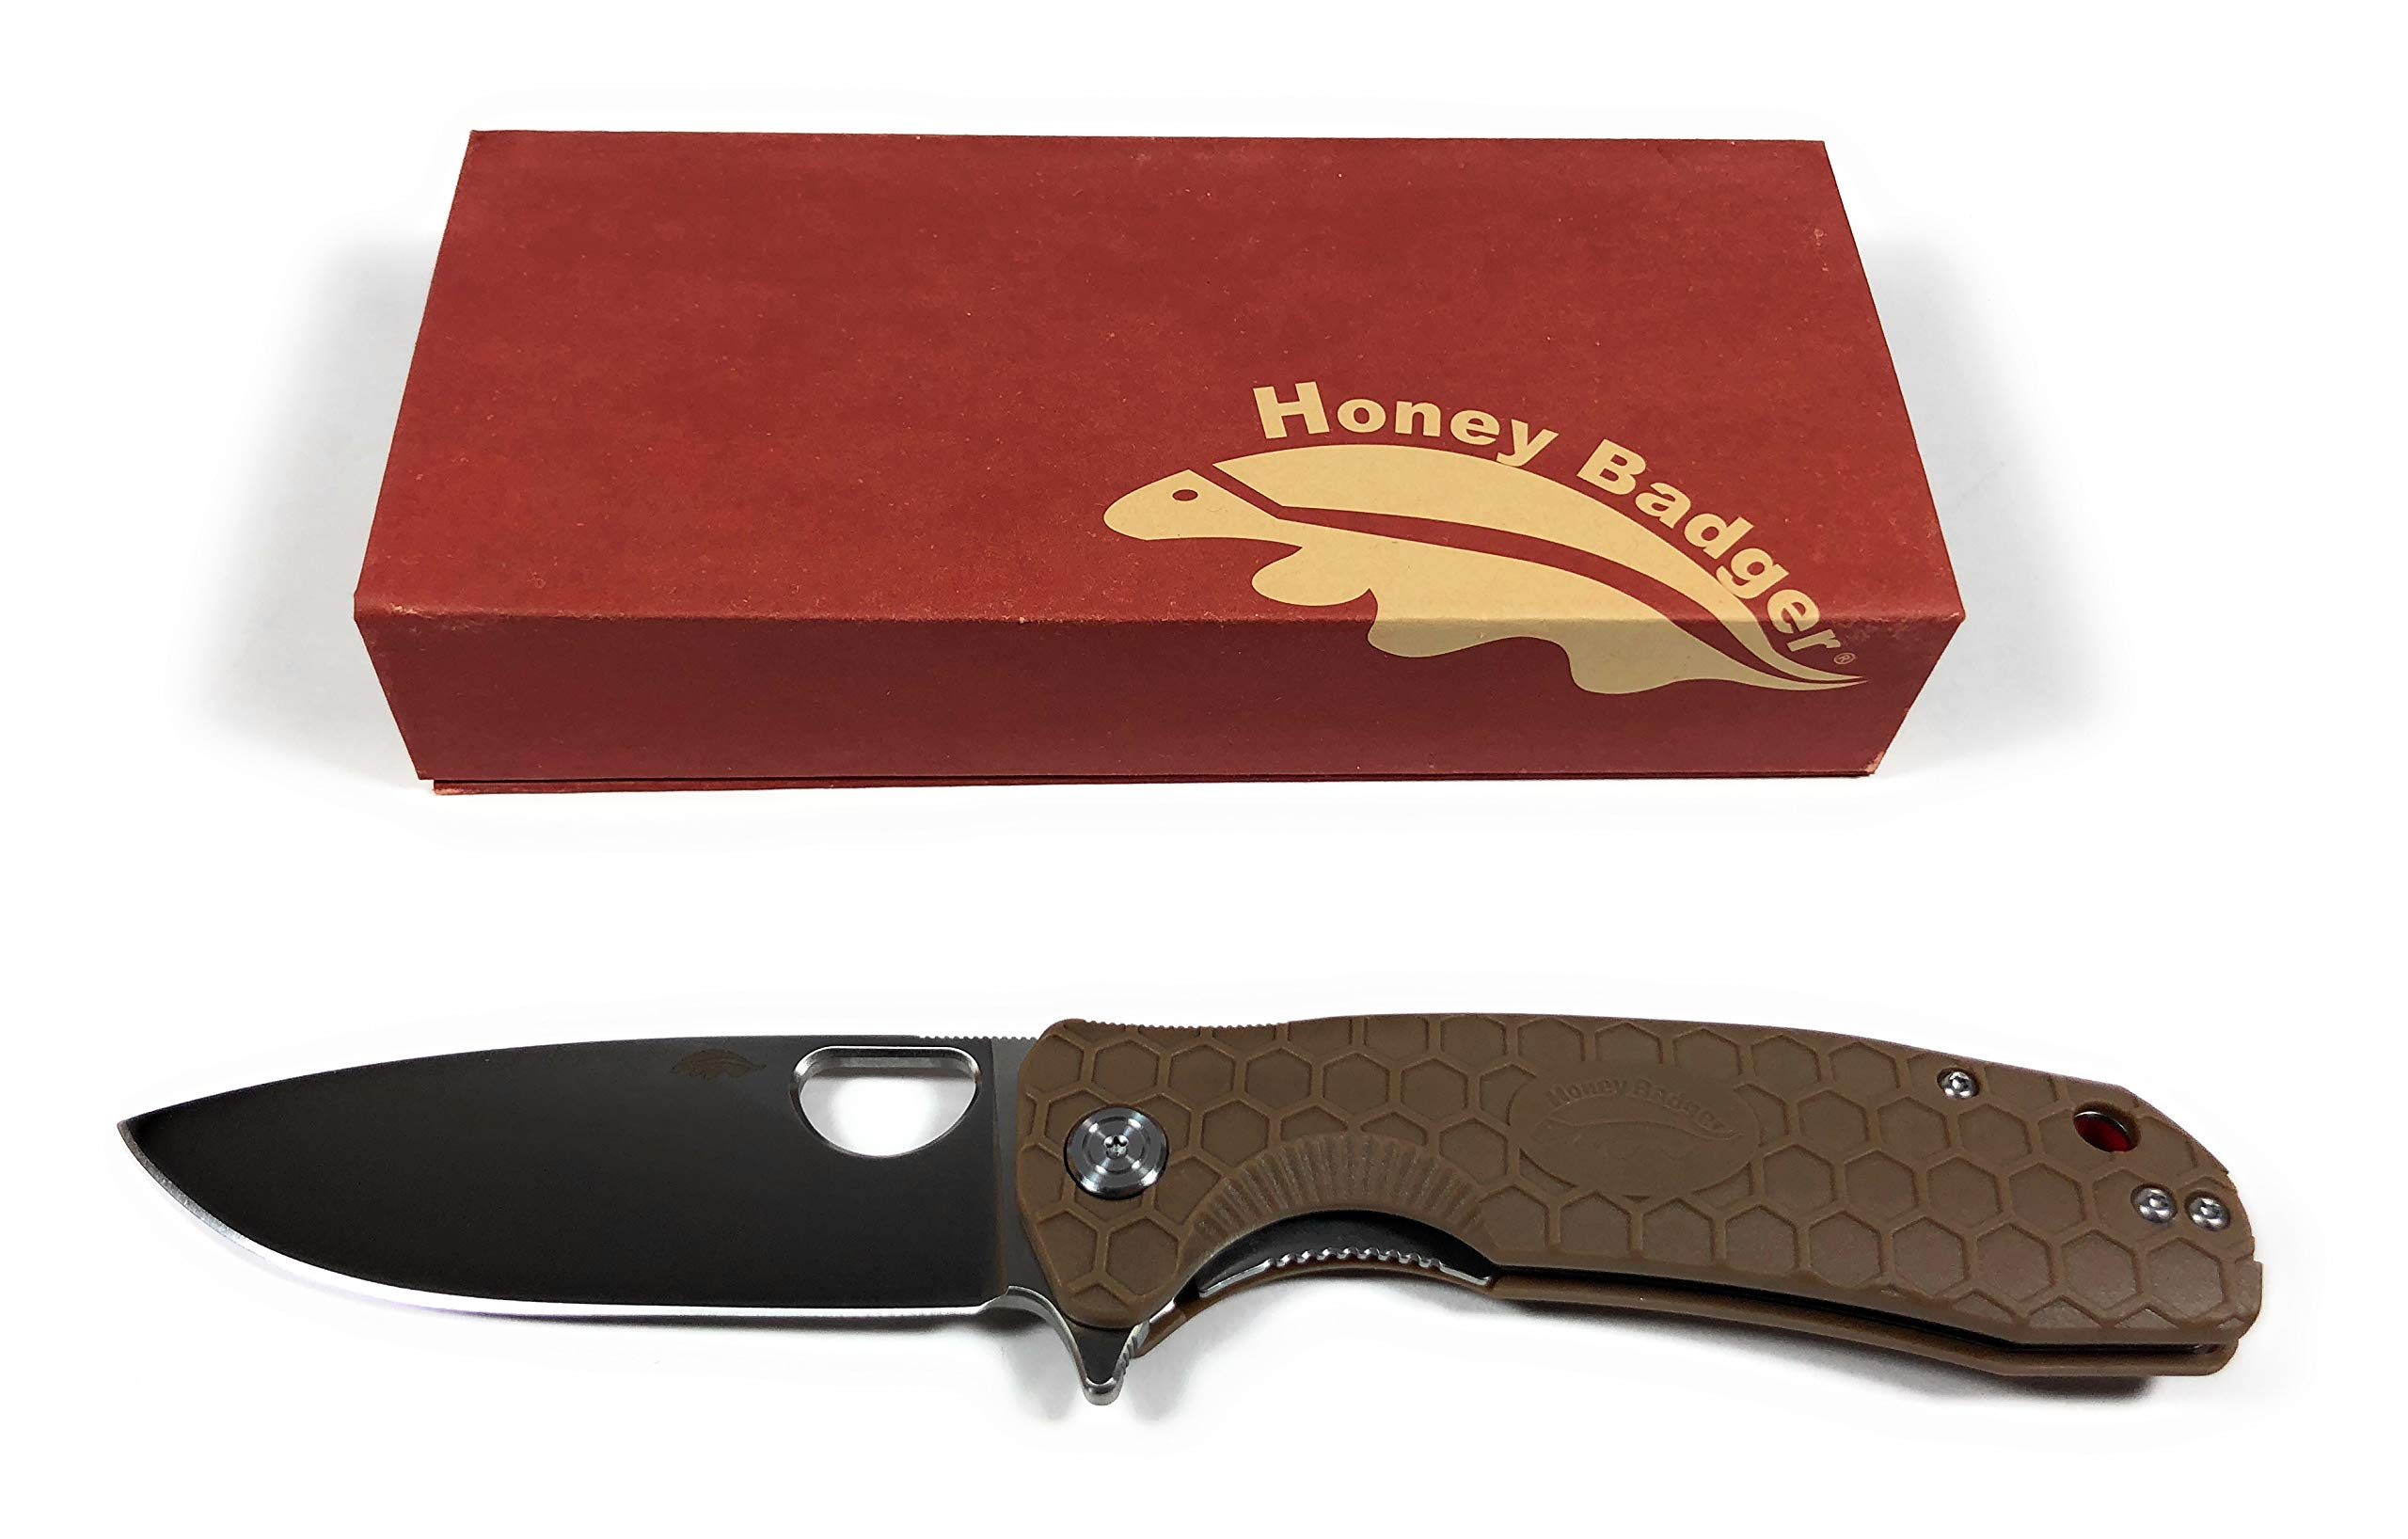 Western Active Honey Badger Pocket Knife Flipper EDC Knife for Hunting, Fishing, Tactical. Deep Pocket Carry Clip Gift Box with Torx Wrench (Tan-D2, Large 3.98oz - 4.6'' Closed - 3.63'' Blade) by Western Active (Image #2)